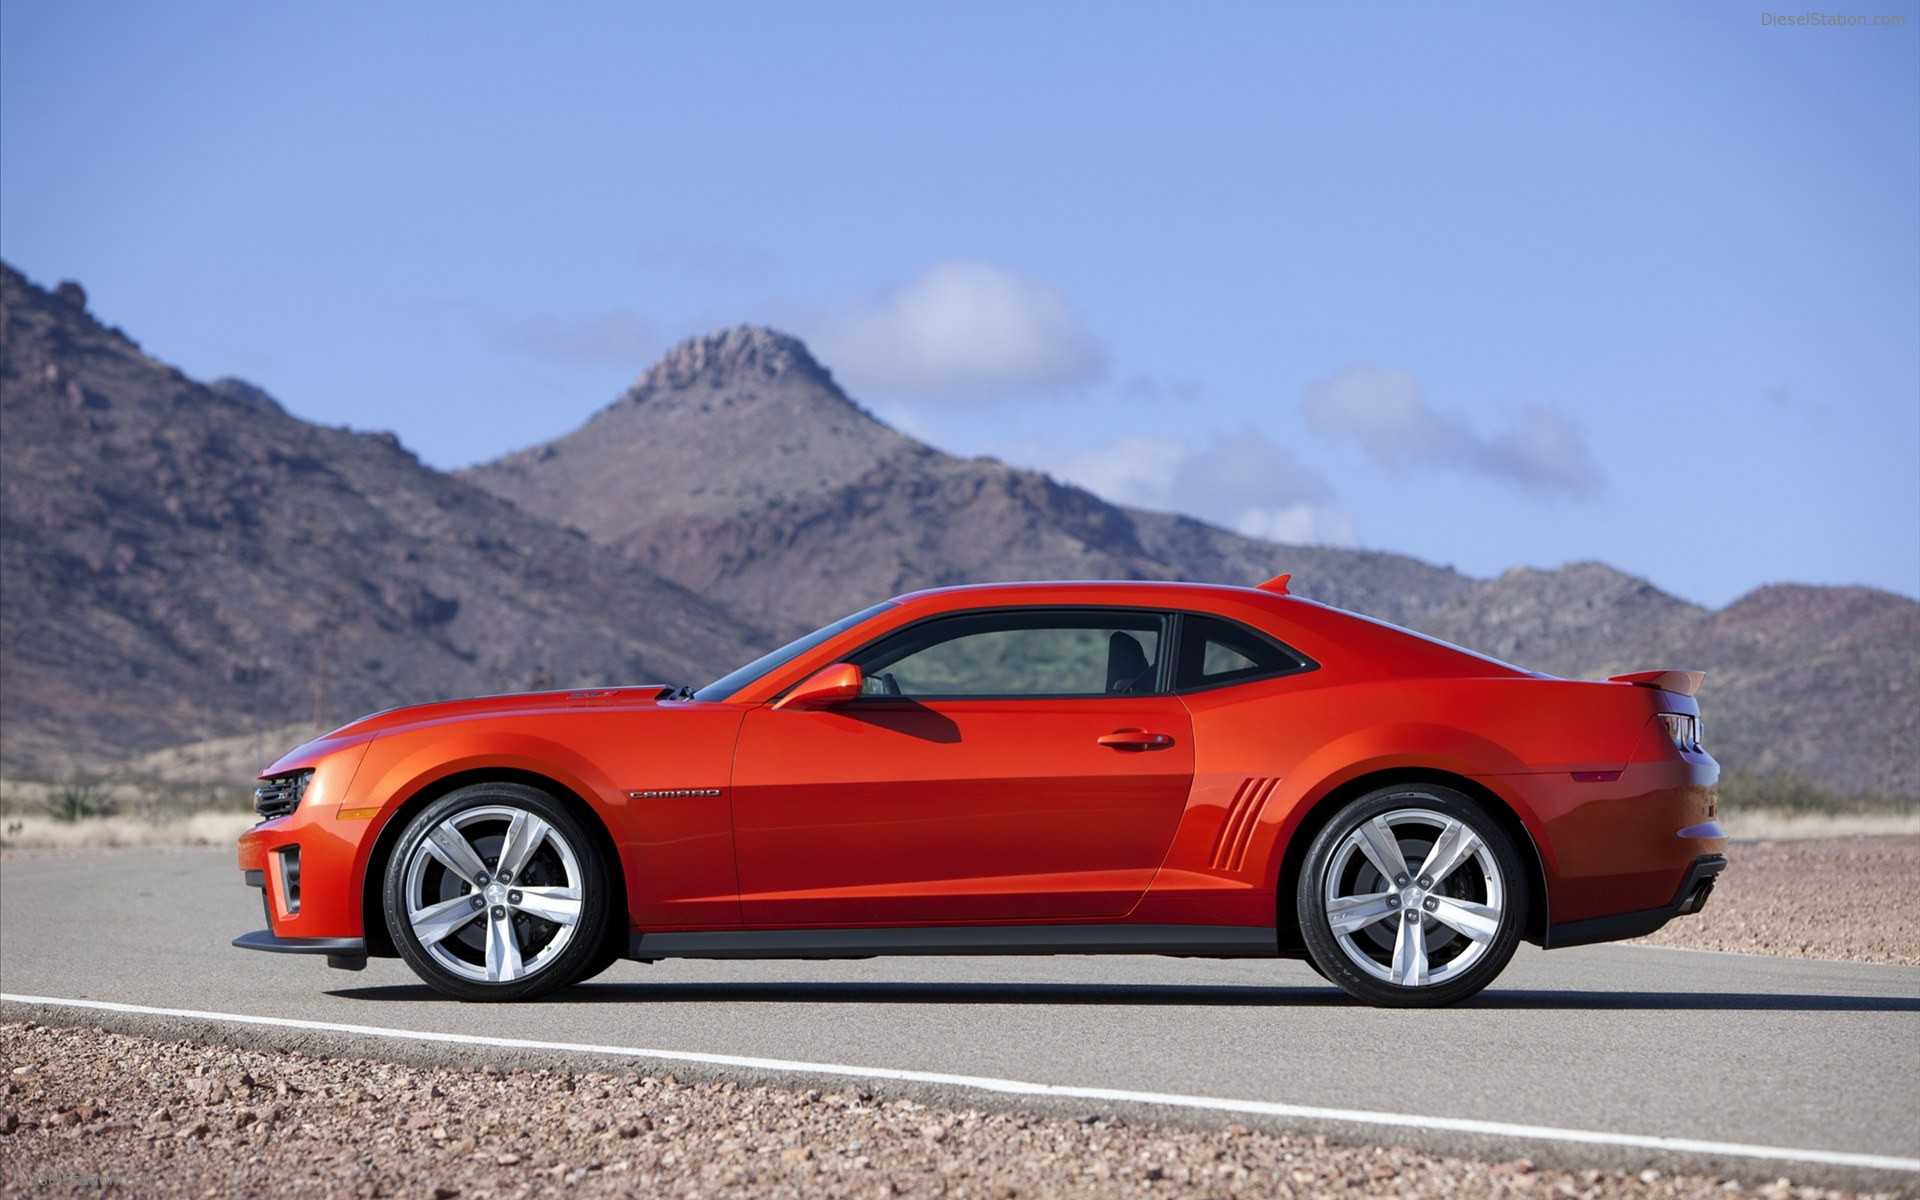 Chevrolet Camaro ZL1 2012 Widescreen Exotic Car Wallpapers 1920x1200